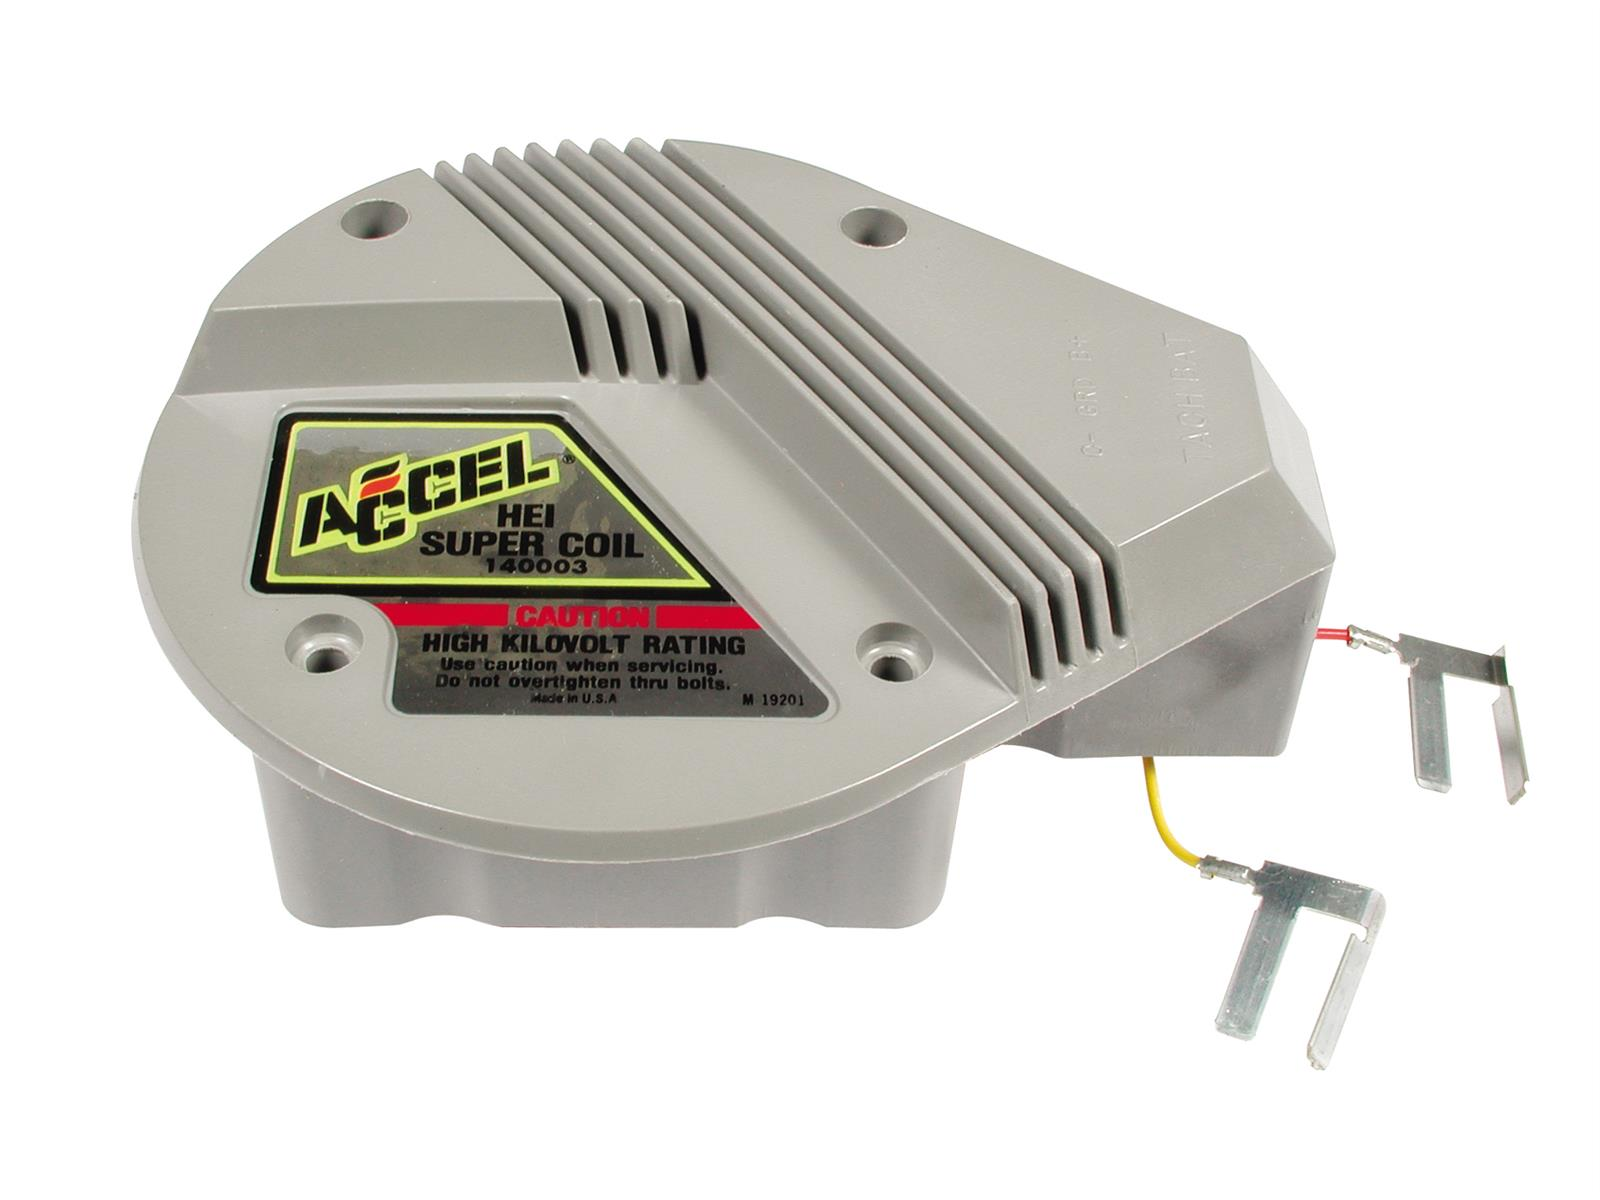 acc 140003_xl accel gm hei in cap super coils 140003 free shipping on orders accel super coil wiring diagram at mifinder.co